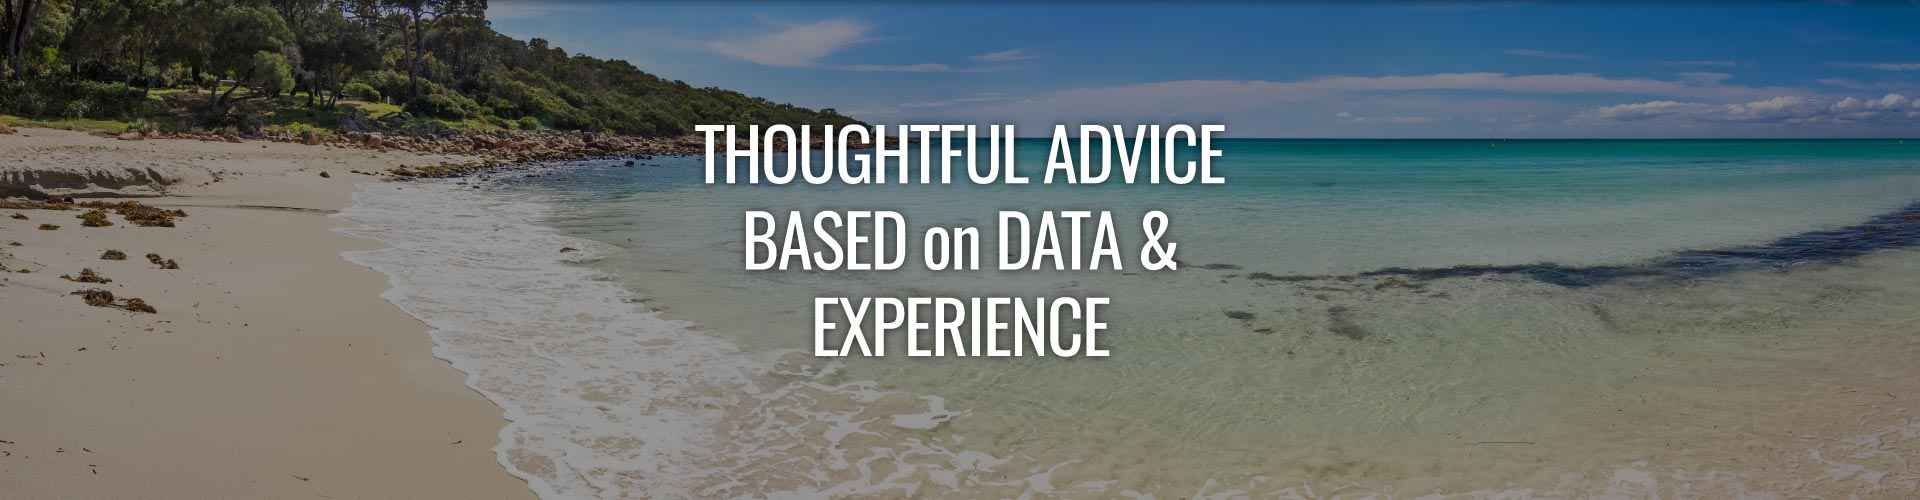 Thoughtful Advice Based on Data & Experience